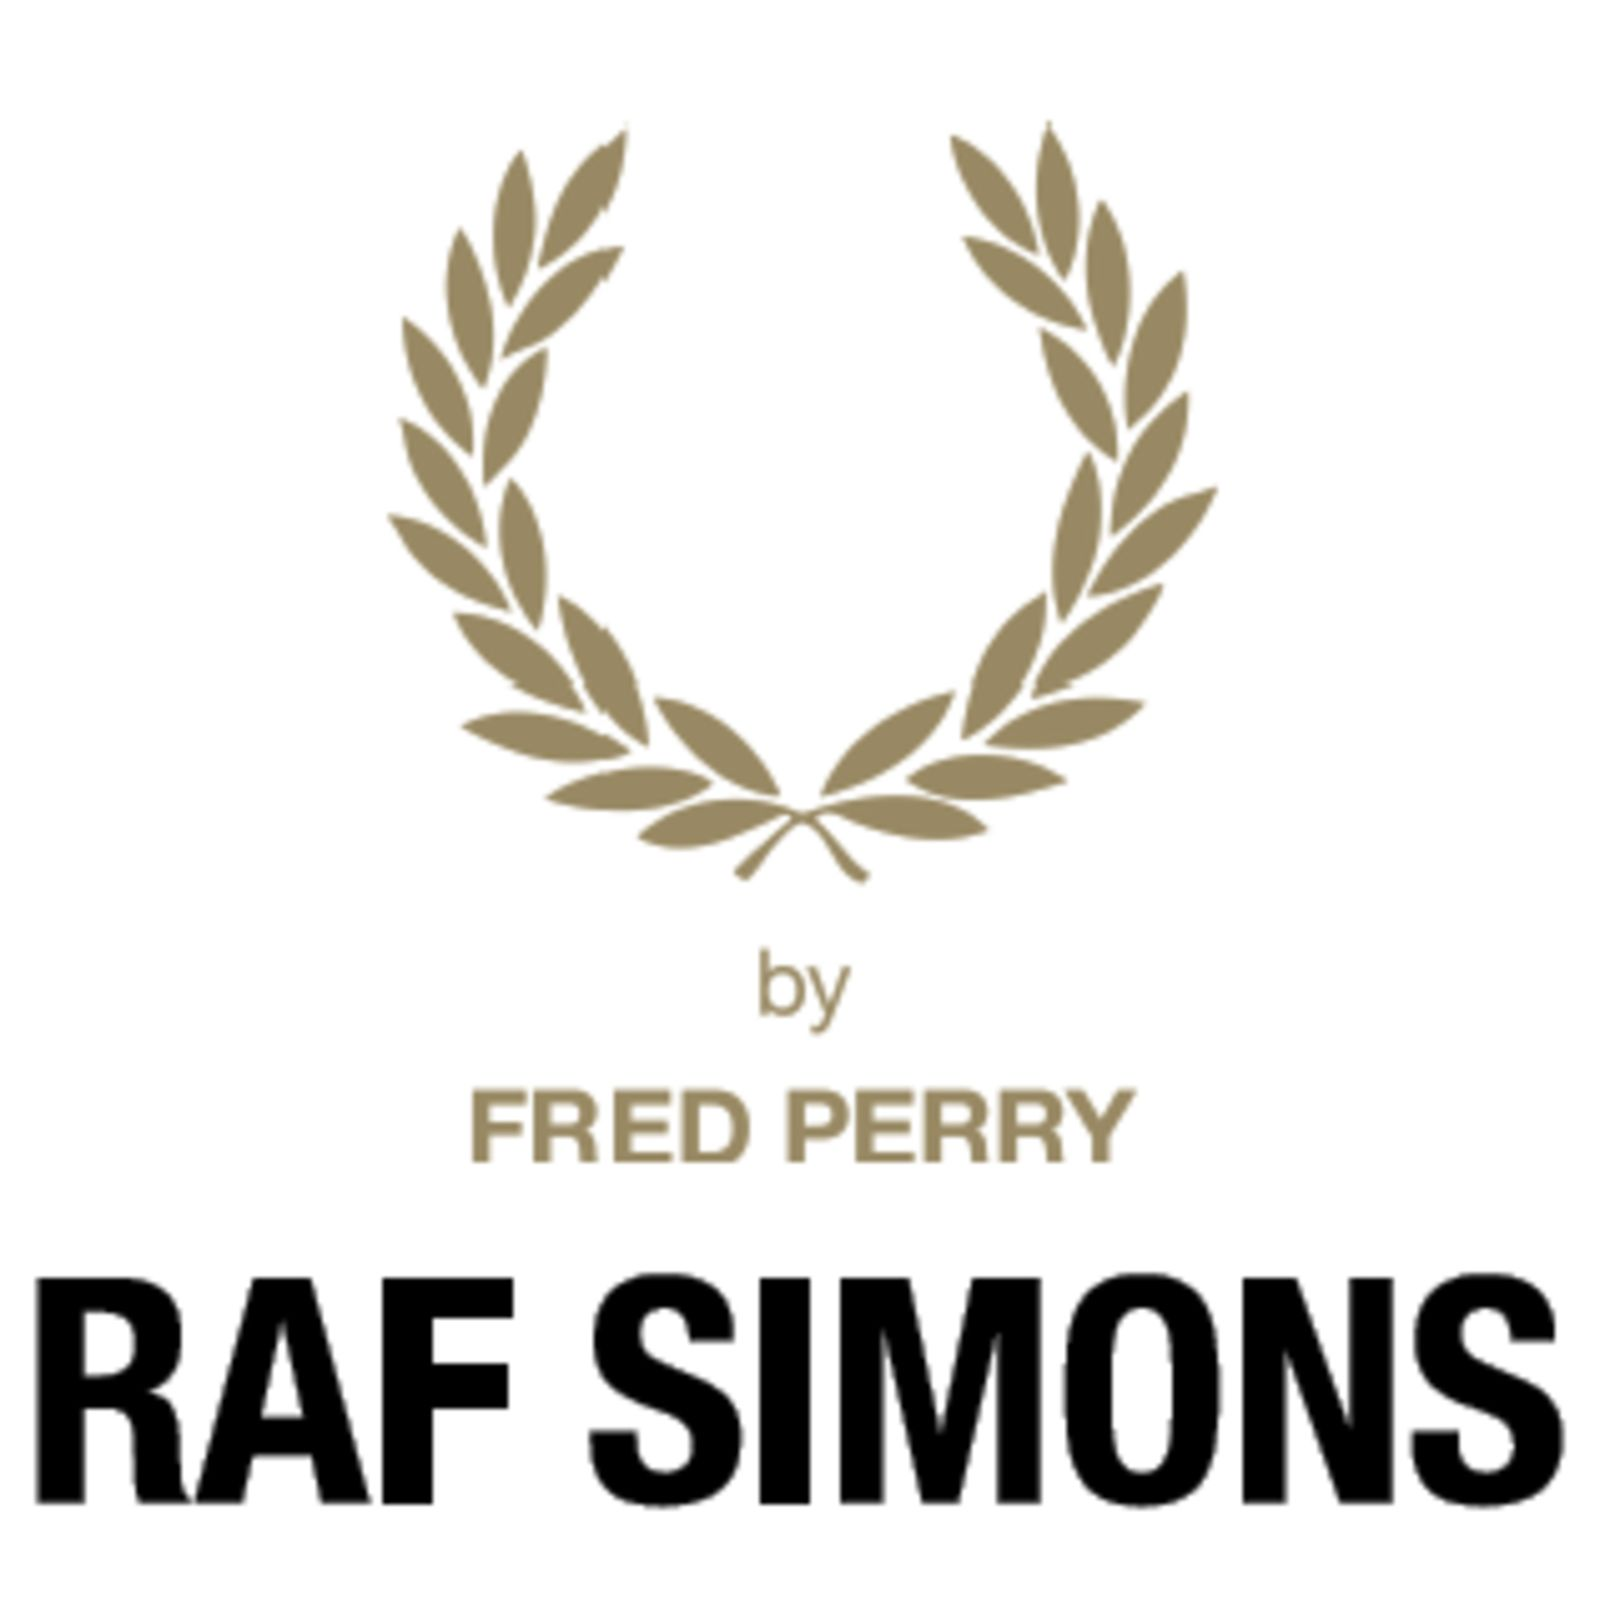 FRED PERRY Laurel Wreath | RAF SIMONS